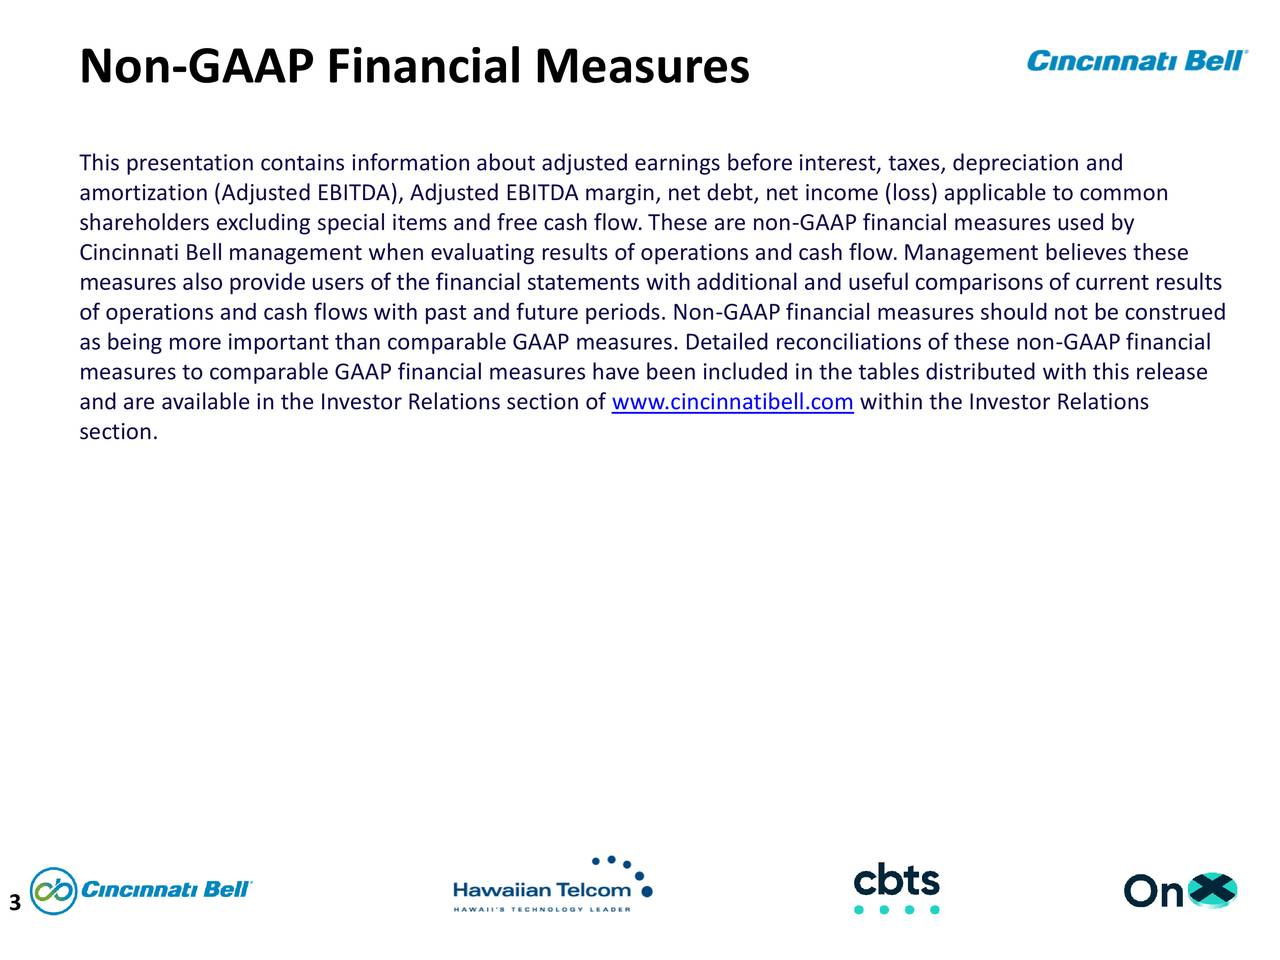 This presentation contains information about adjusted earnings before interest, taxes, depreciation and amortization (Adjusted EBITDA), Adjusted EBITDA margin, net debt, net income (loss) applicable to common shareholders excluding special items and free cash flow. These are non-GAAP financial measures used by Cincinnati Bell management when evaluating results of operations and cash flow. Management believes these measures also provide users of the financial statements with additional and useful comparisons of current results of operations and cash flows with past and future periods. Non-GAAP financial measures should not be construed as being more important than comparable GAAP measures. Detailed reconciliations of these non-GAAP financial measures to comparable GAAP financial measures have been included in the tables distributed with this release and are available in the Investor Relations section of www.cincinnatibell.com within the Investor Relations section. 3